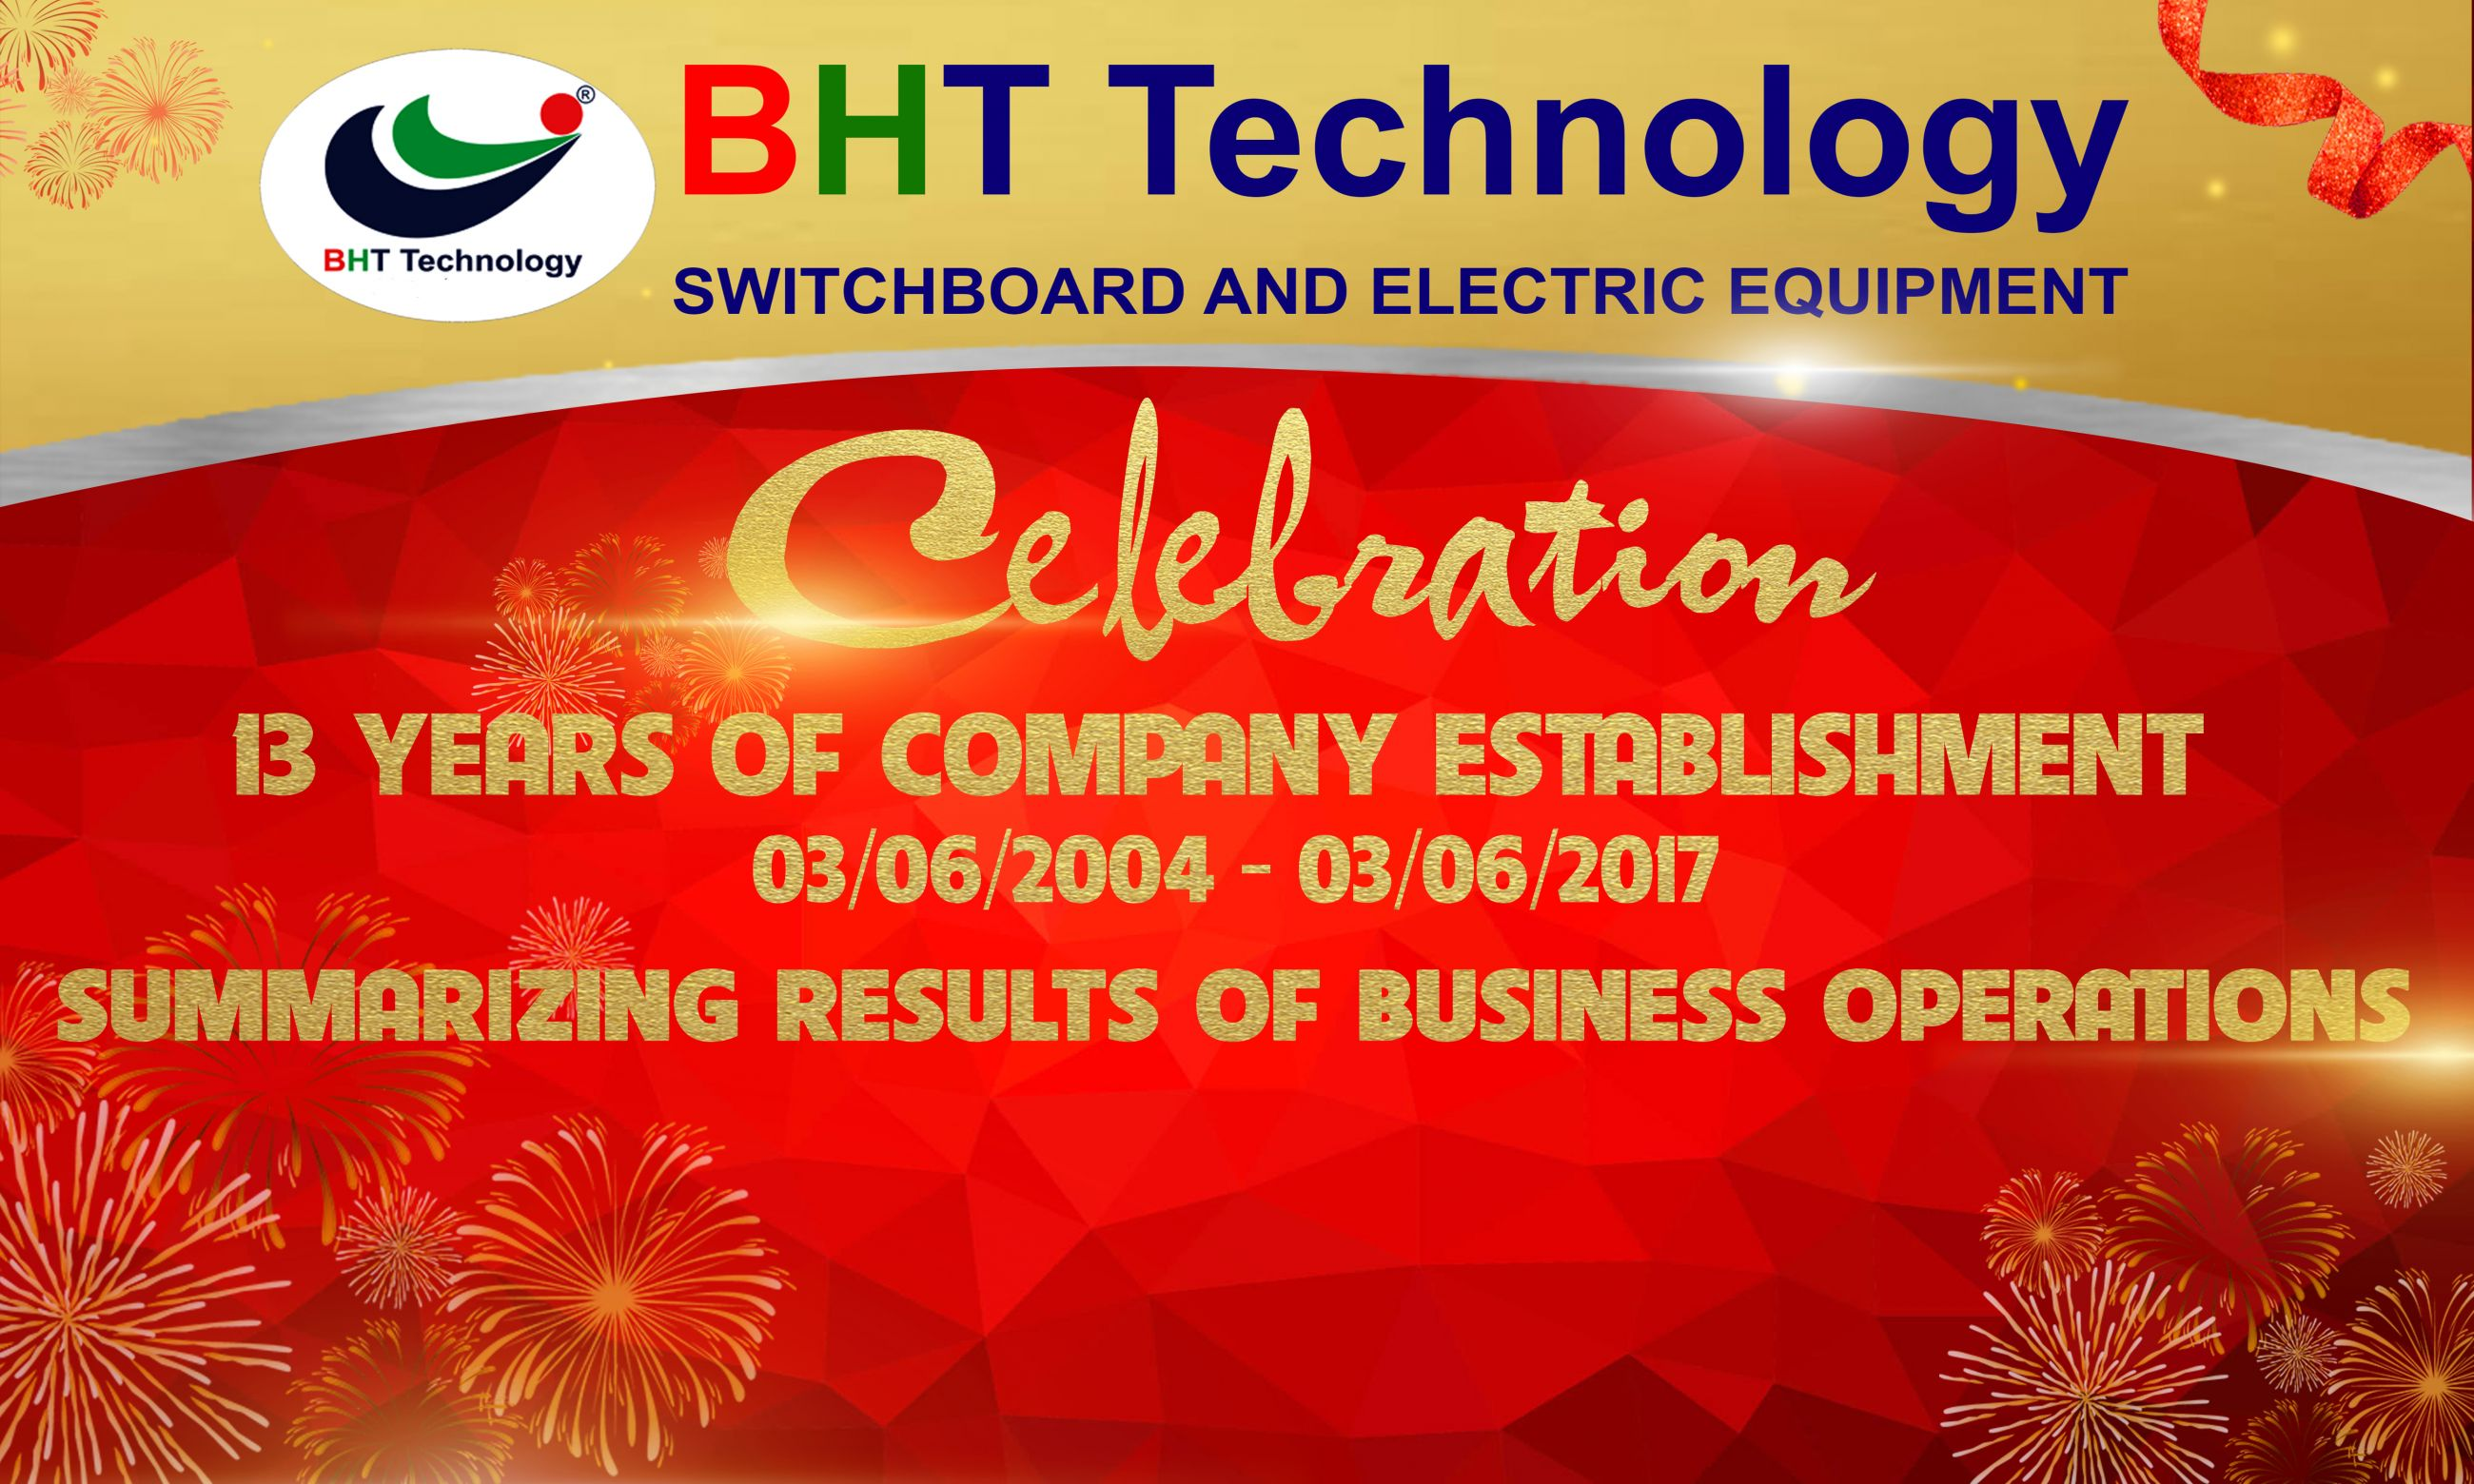 CELEBRATION 13 YEARS OF COMPANY ESTABLISHMENT